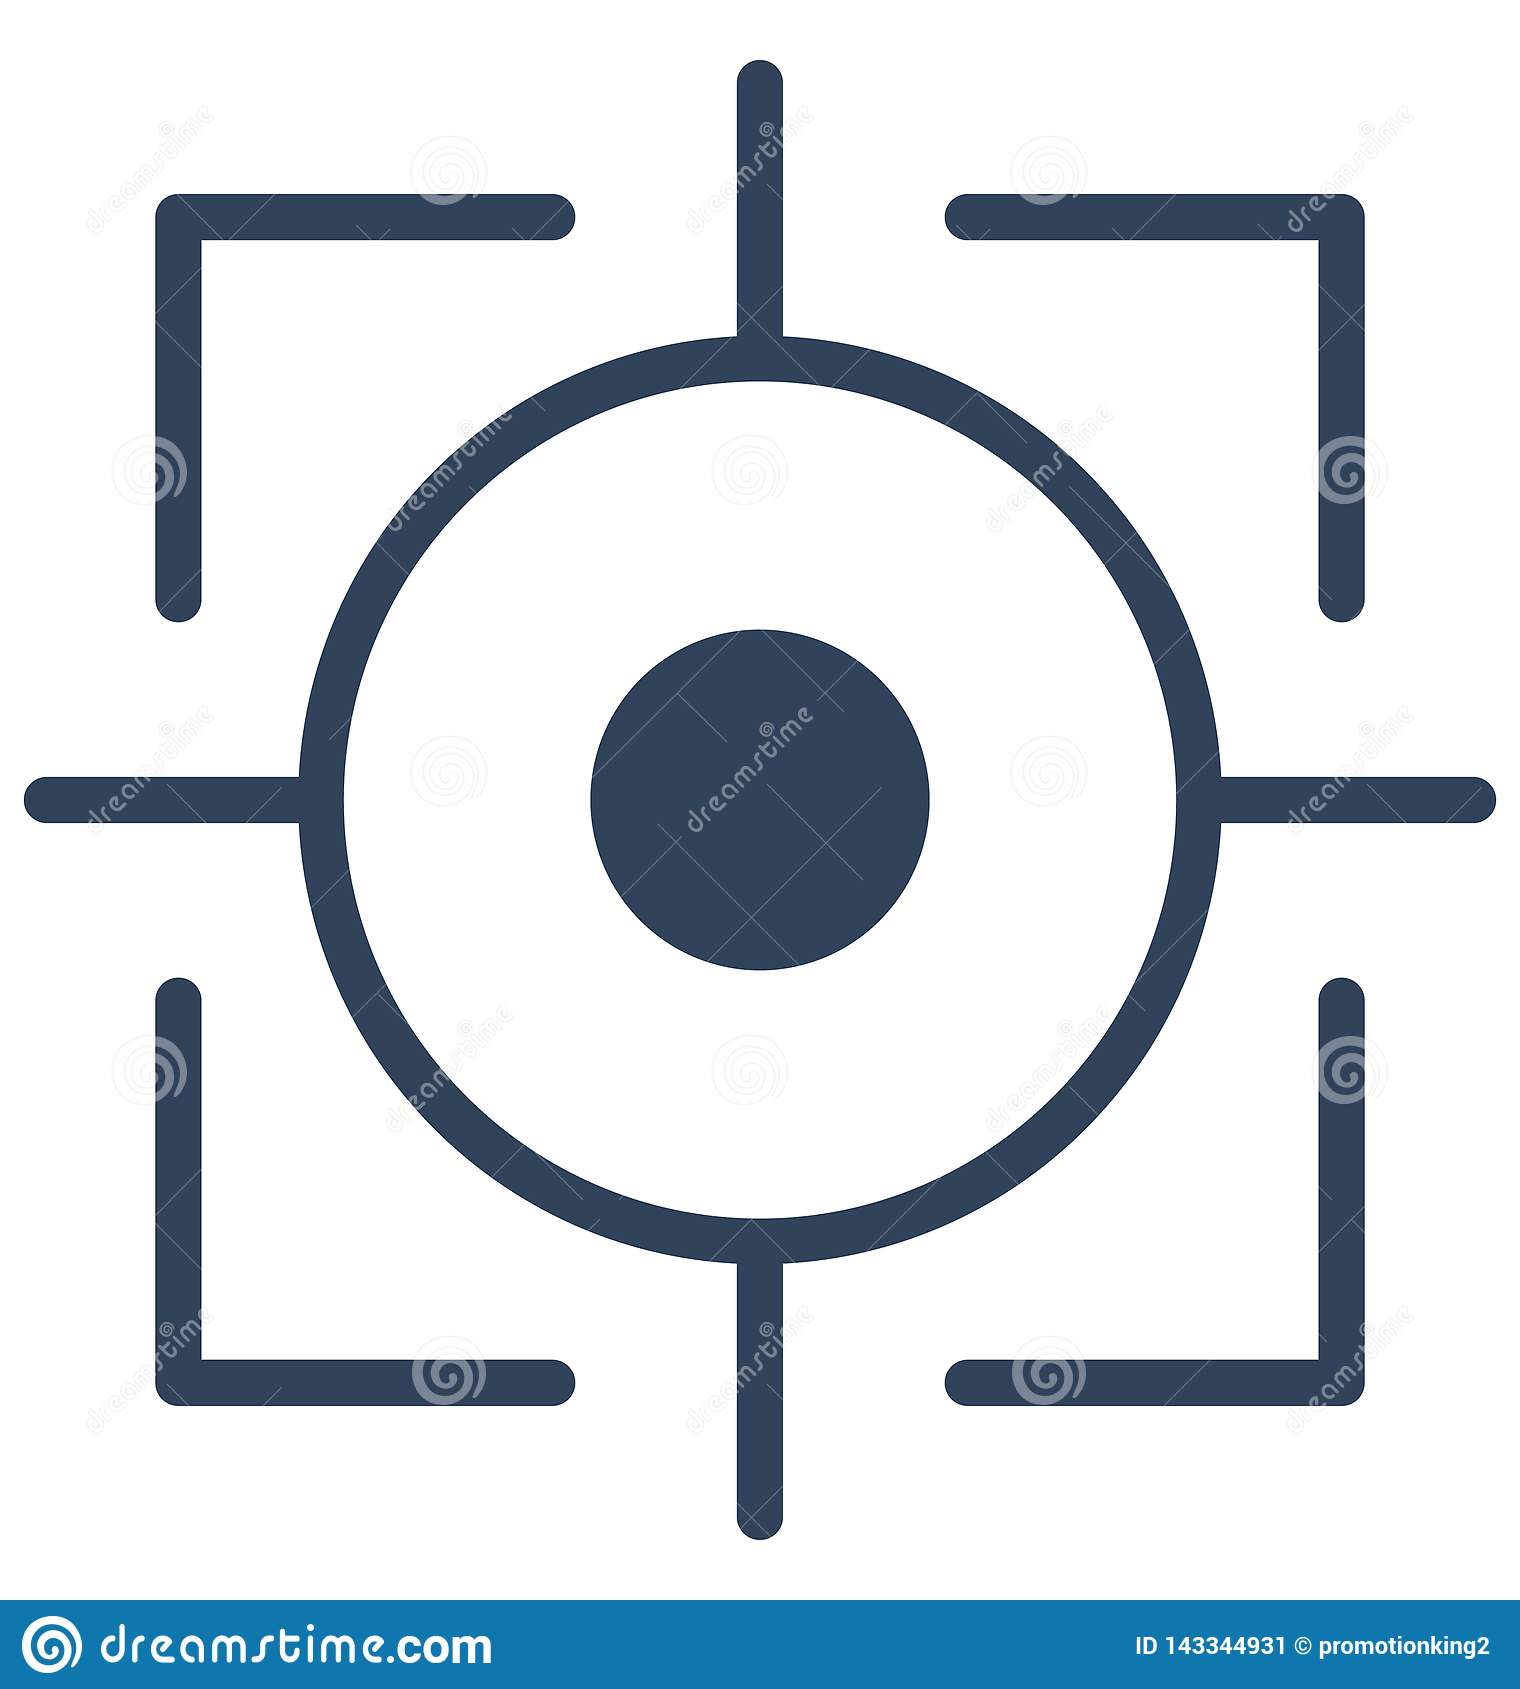 Focus Isolated Vector icon which can easily modify or edit